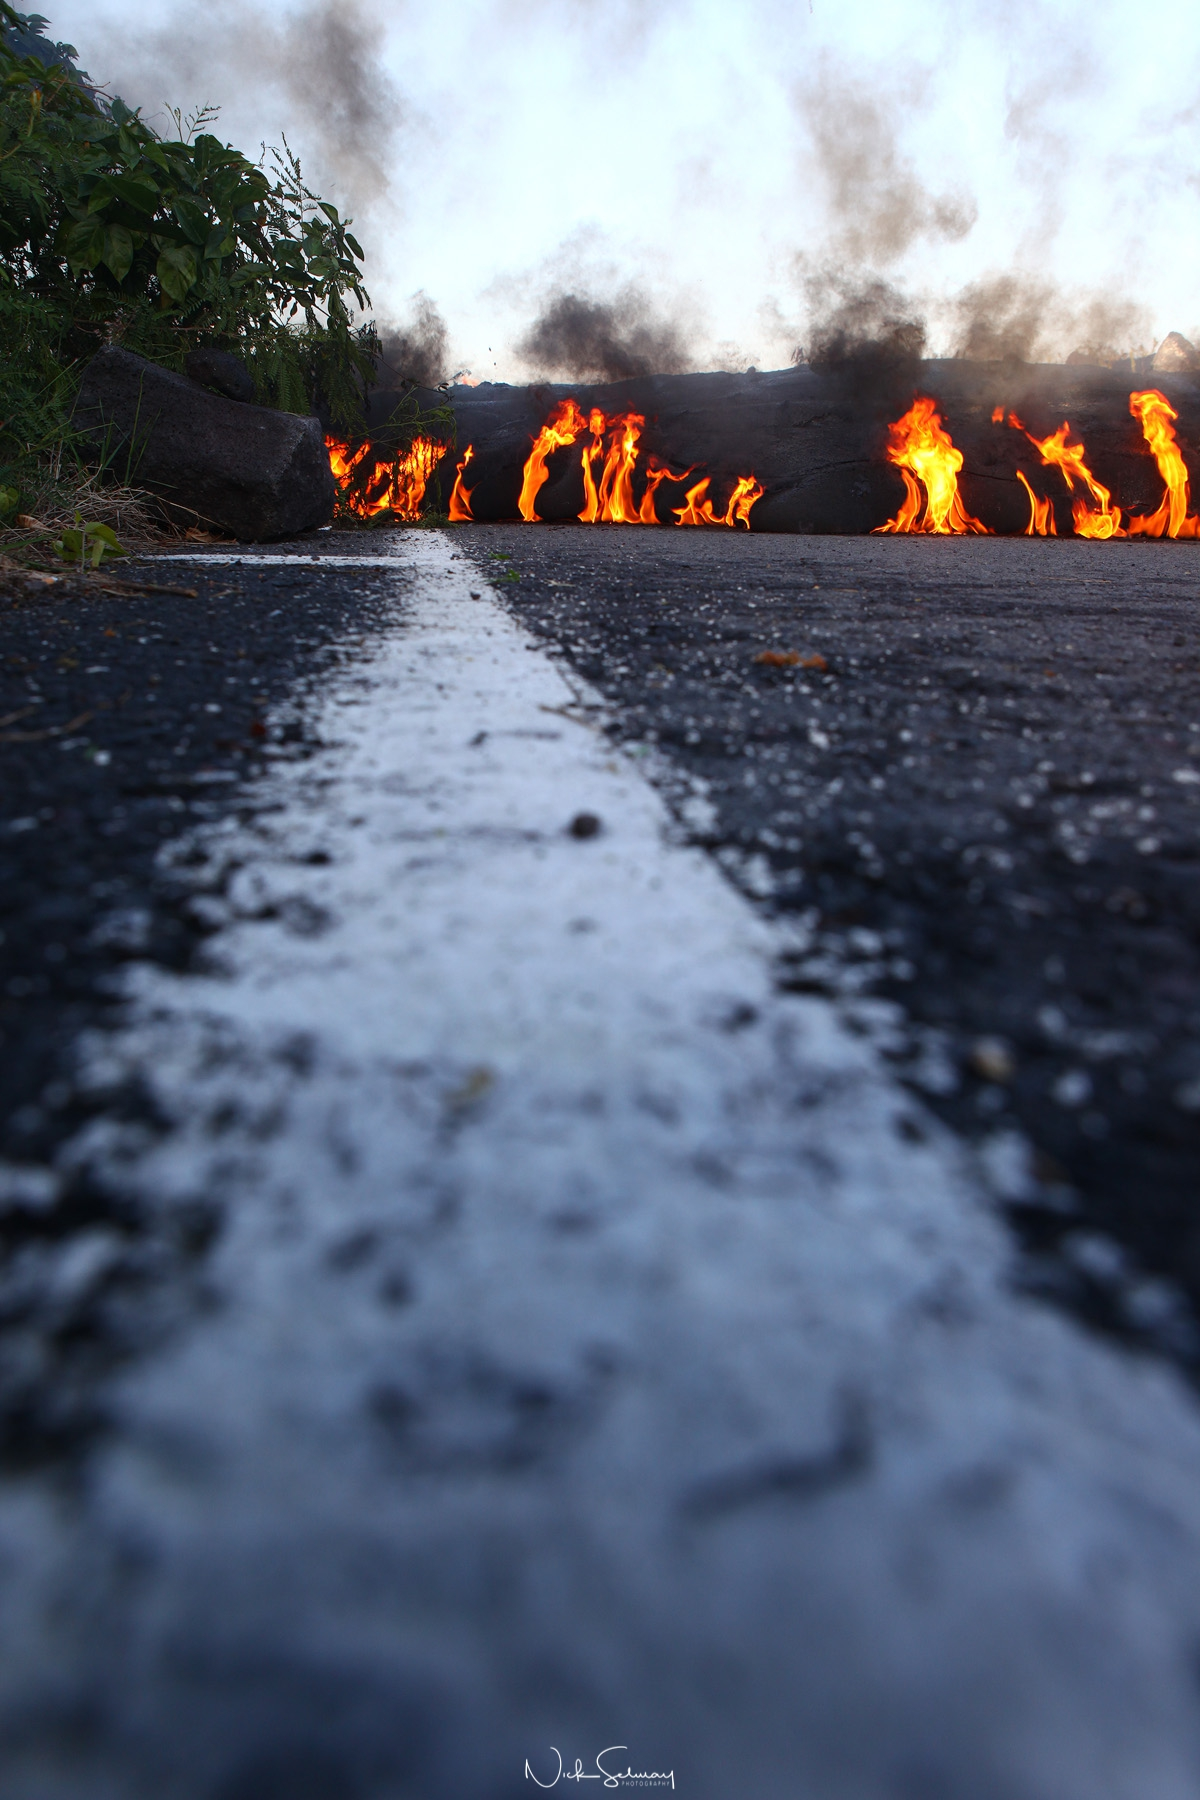 In this image of hot lava, lava burns a road on the edge of Volcano National Park in HI. Shop this print & a variety of hot lava photography for sale.